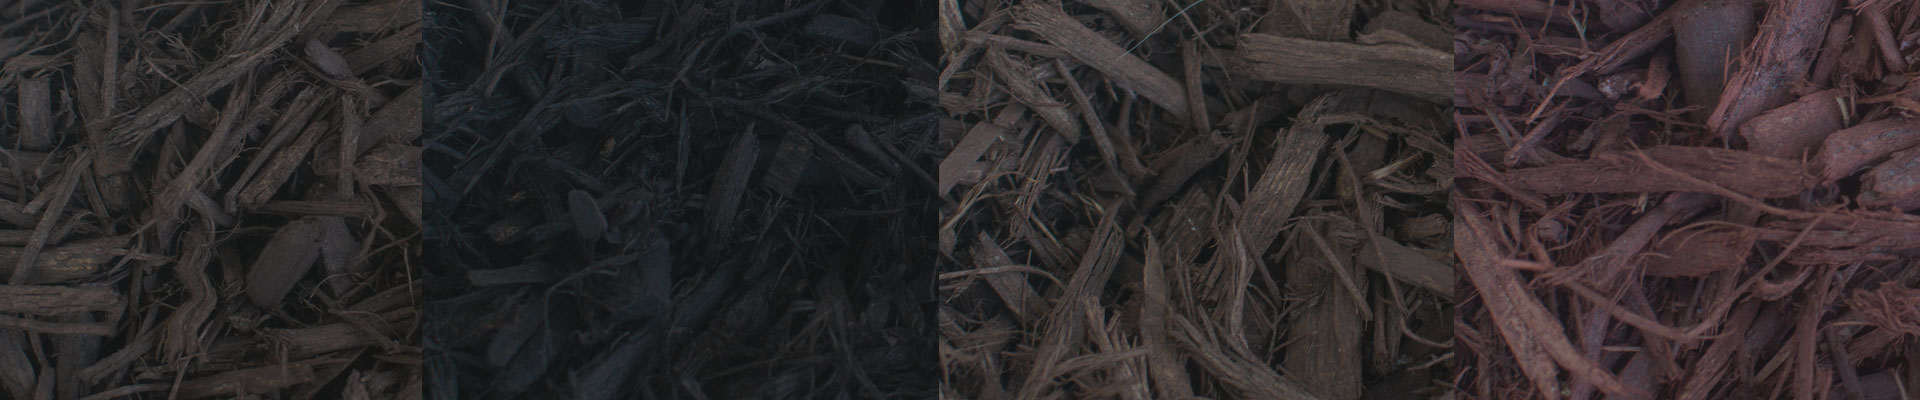 Bark and Mulch banner image